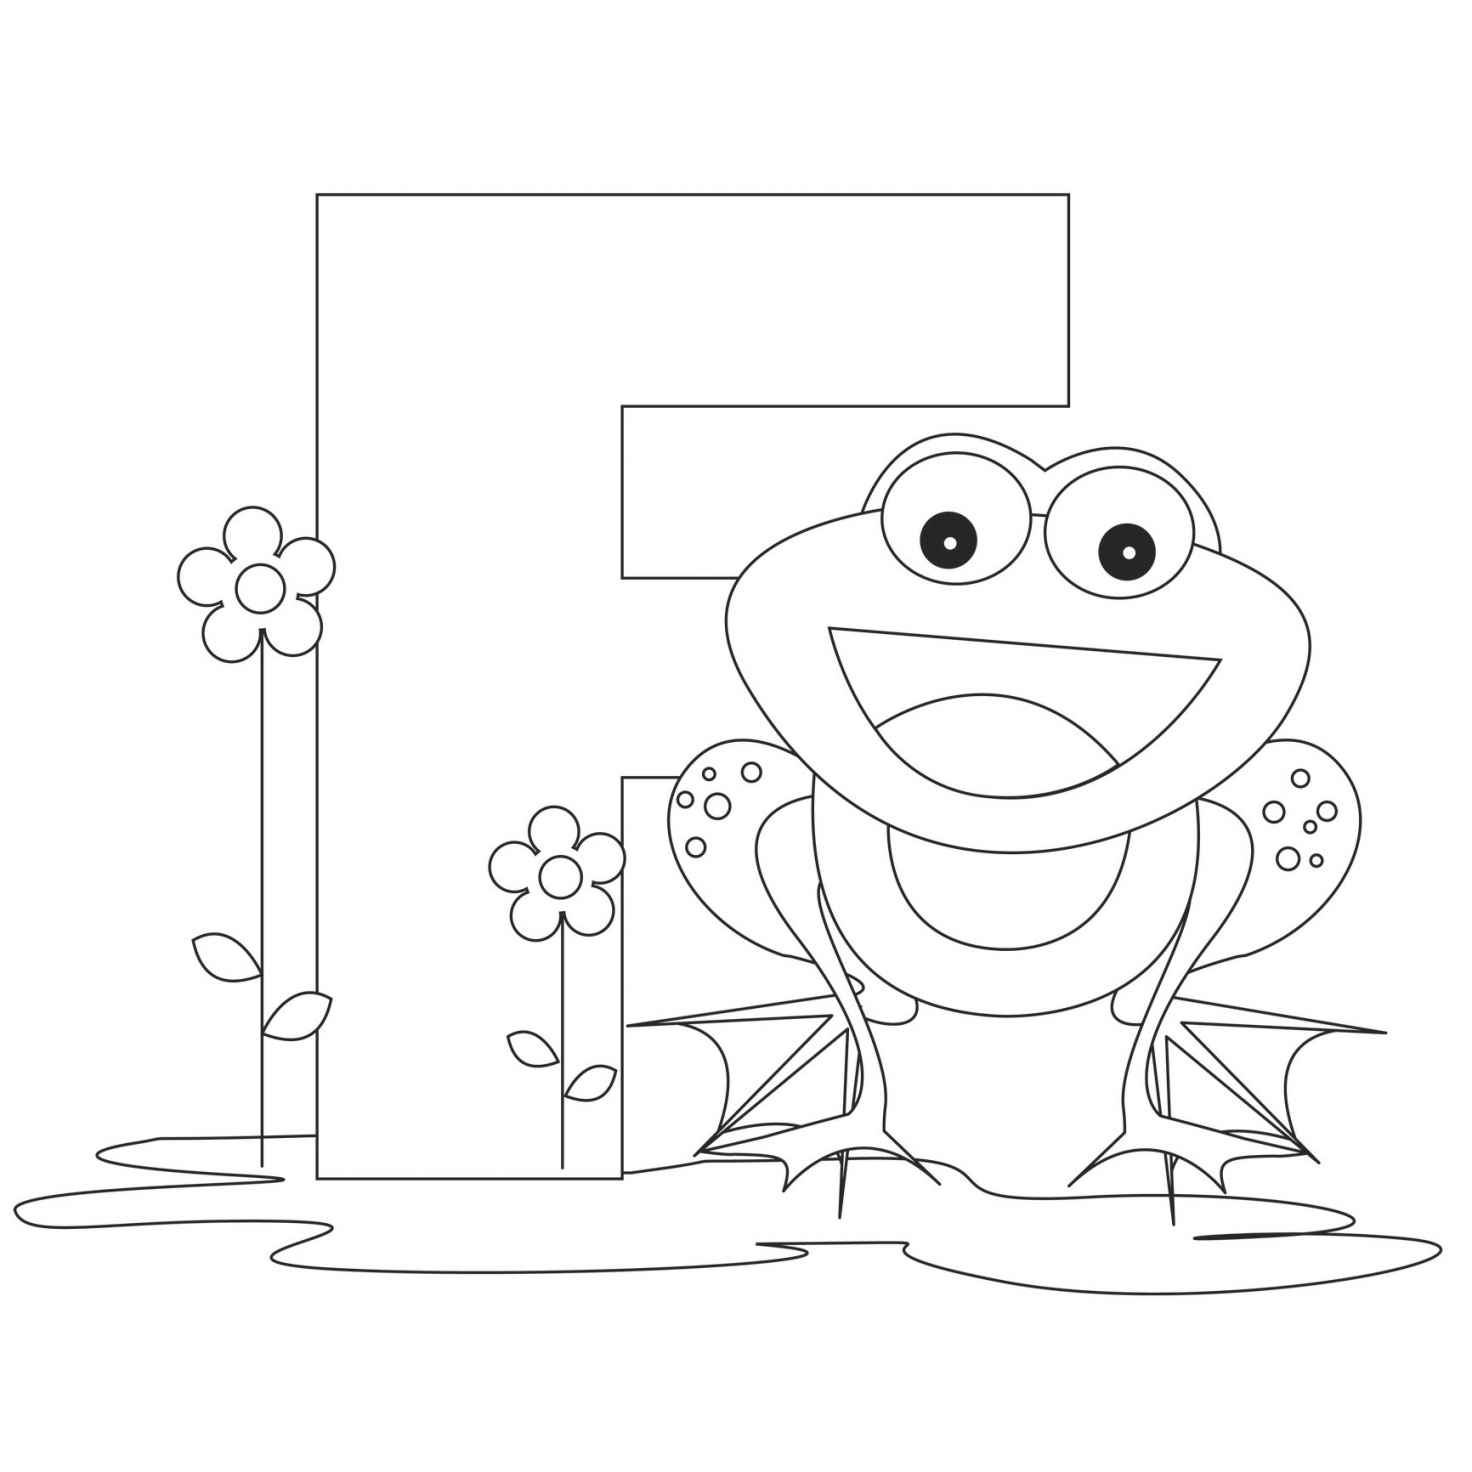 Spanish Numbers Coloring Pages At Getdrawings Com Free For